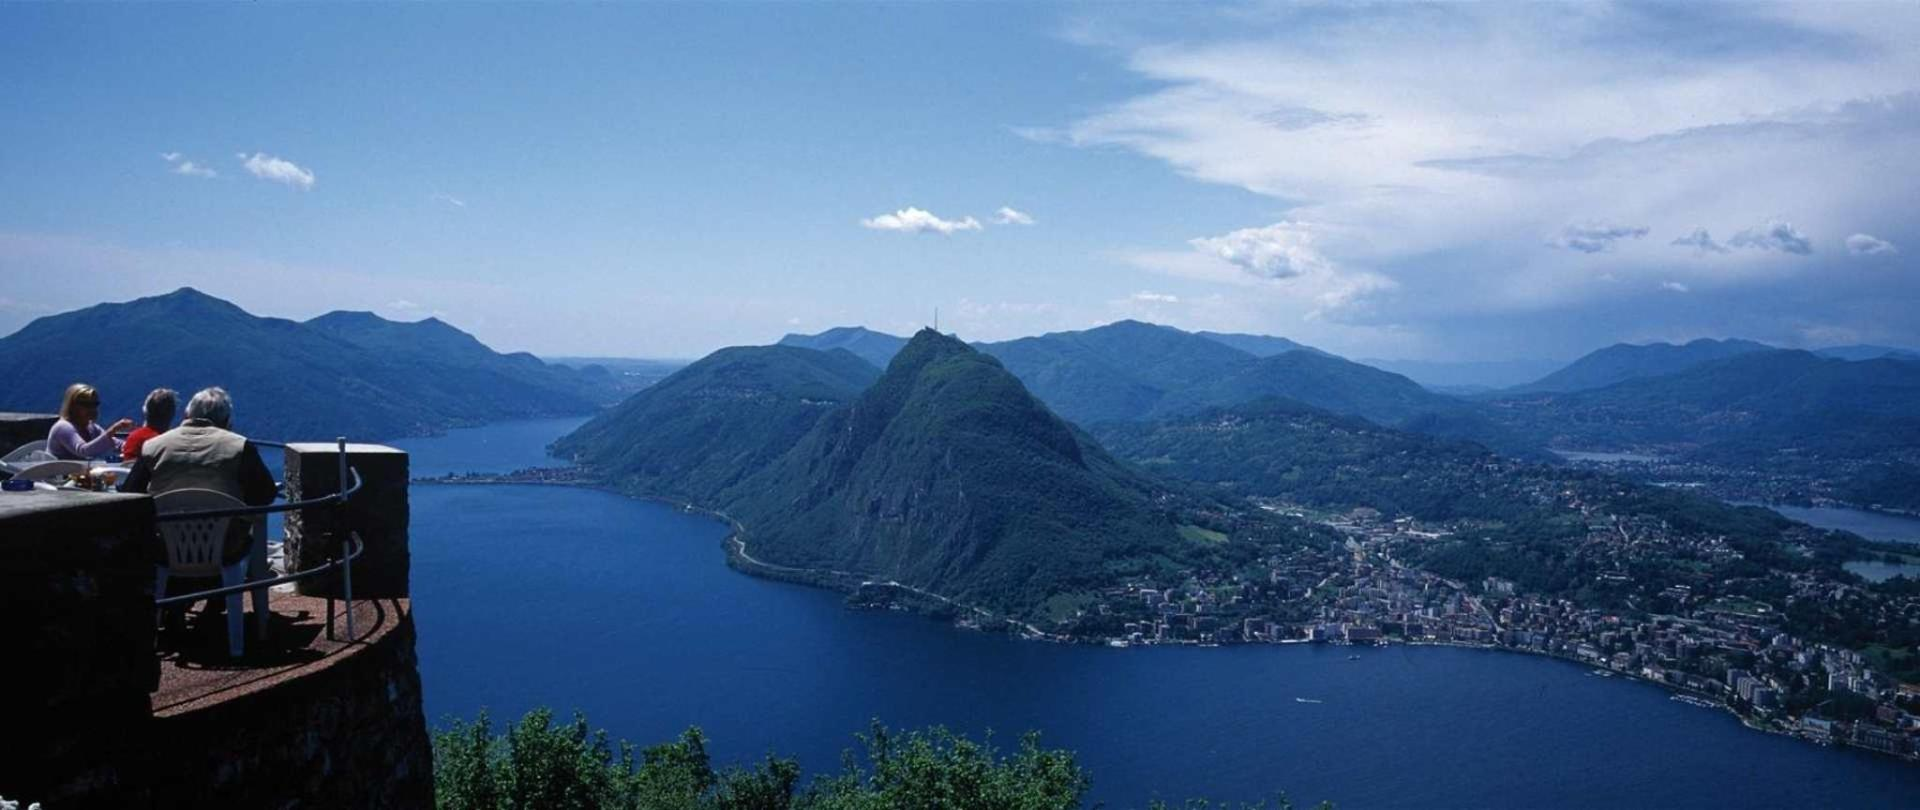 Lugano Savosa Youth Hostel